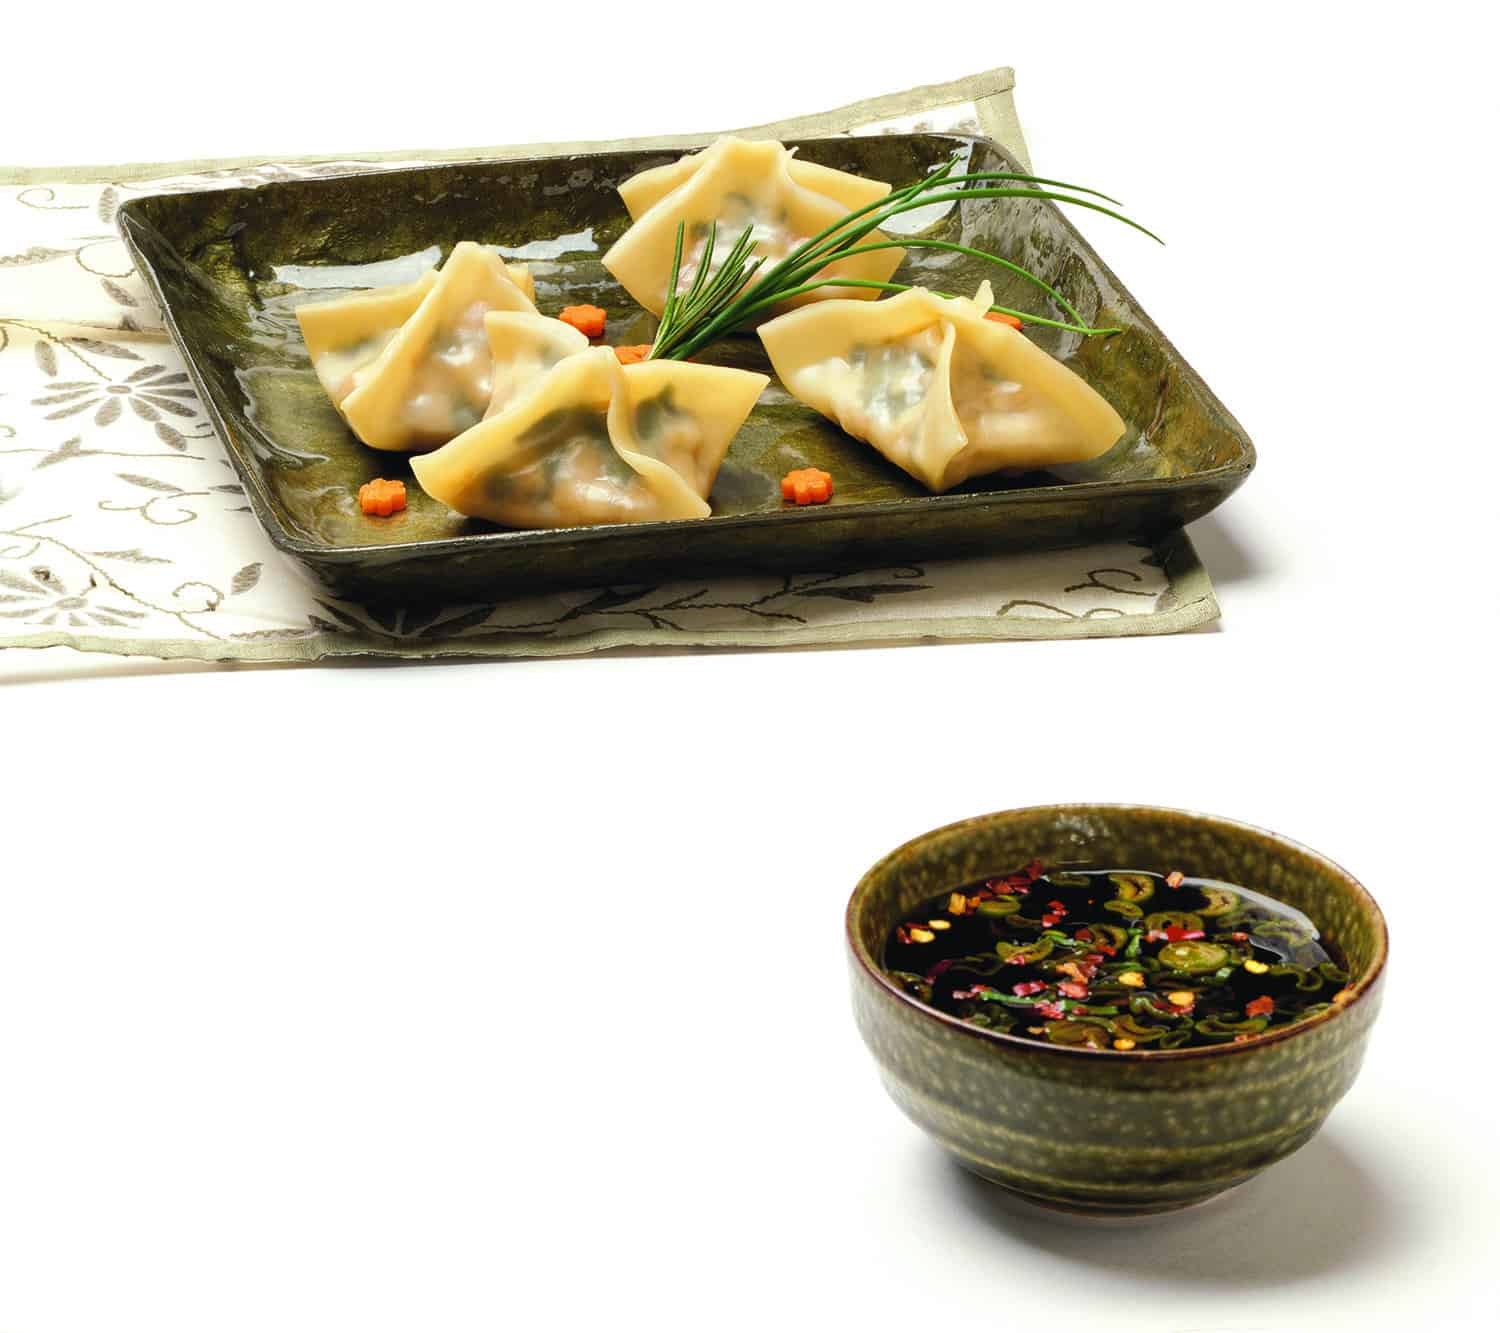 Shanghai Express Dumplings with Mustard Plum Dipping Sauce